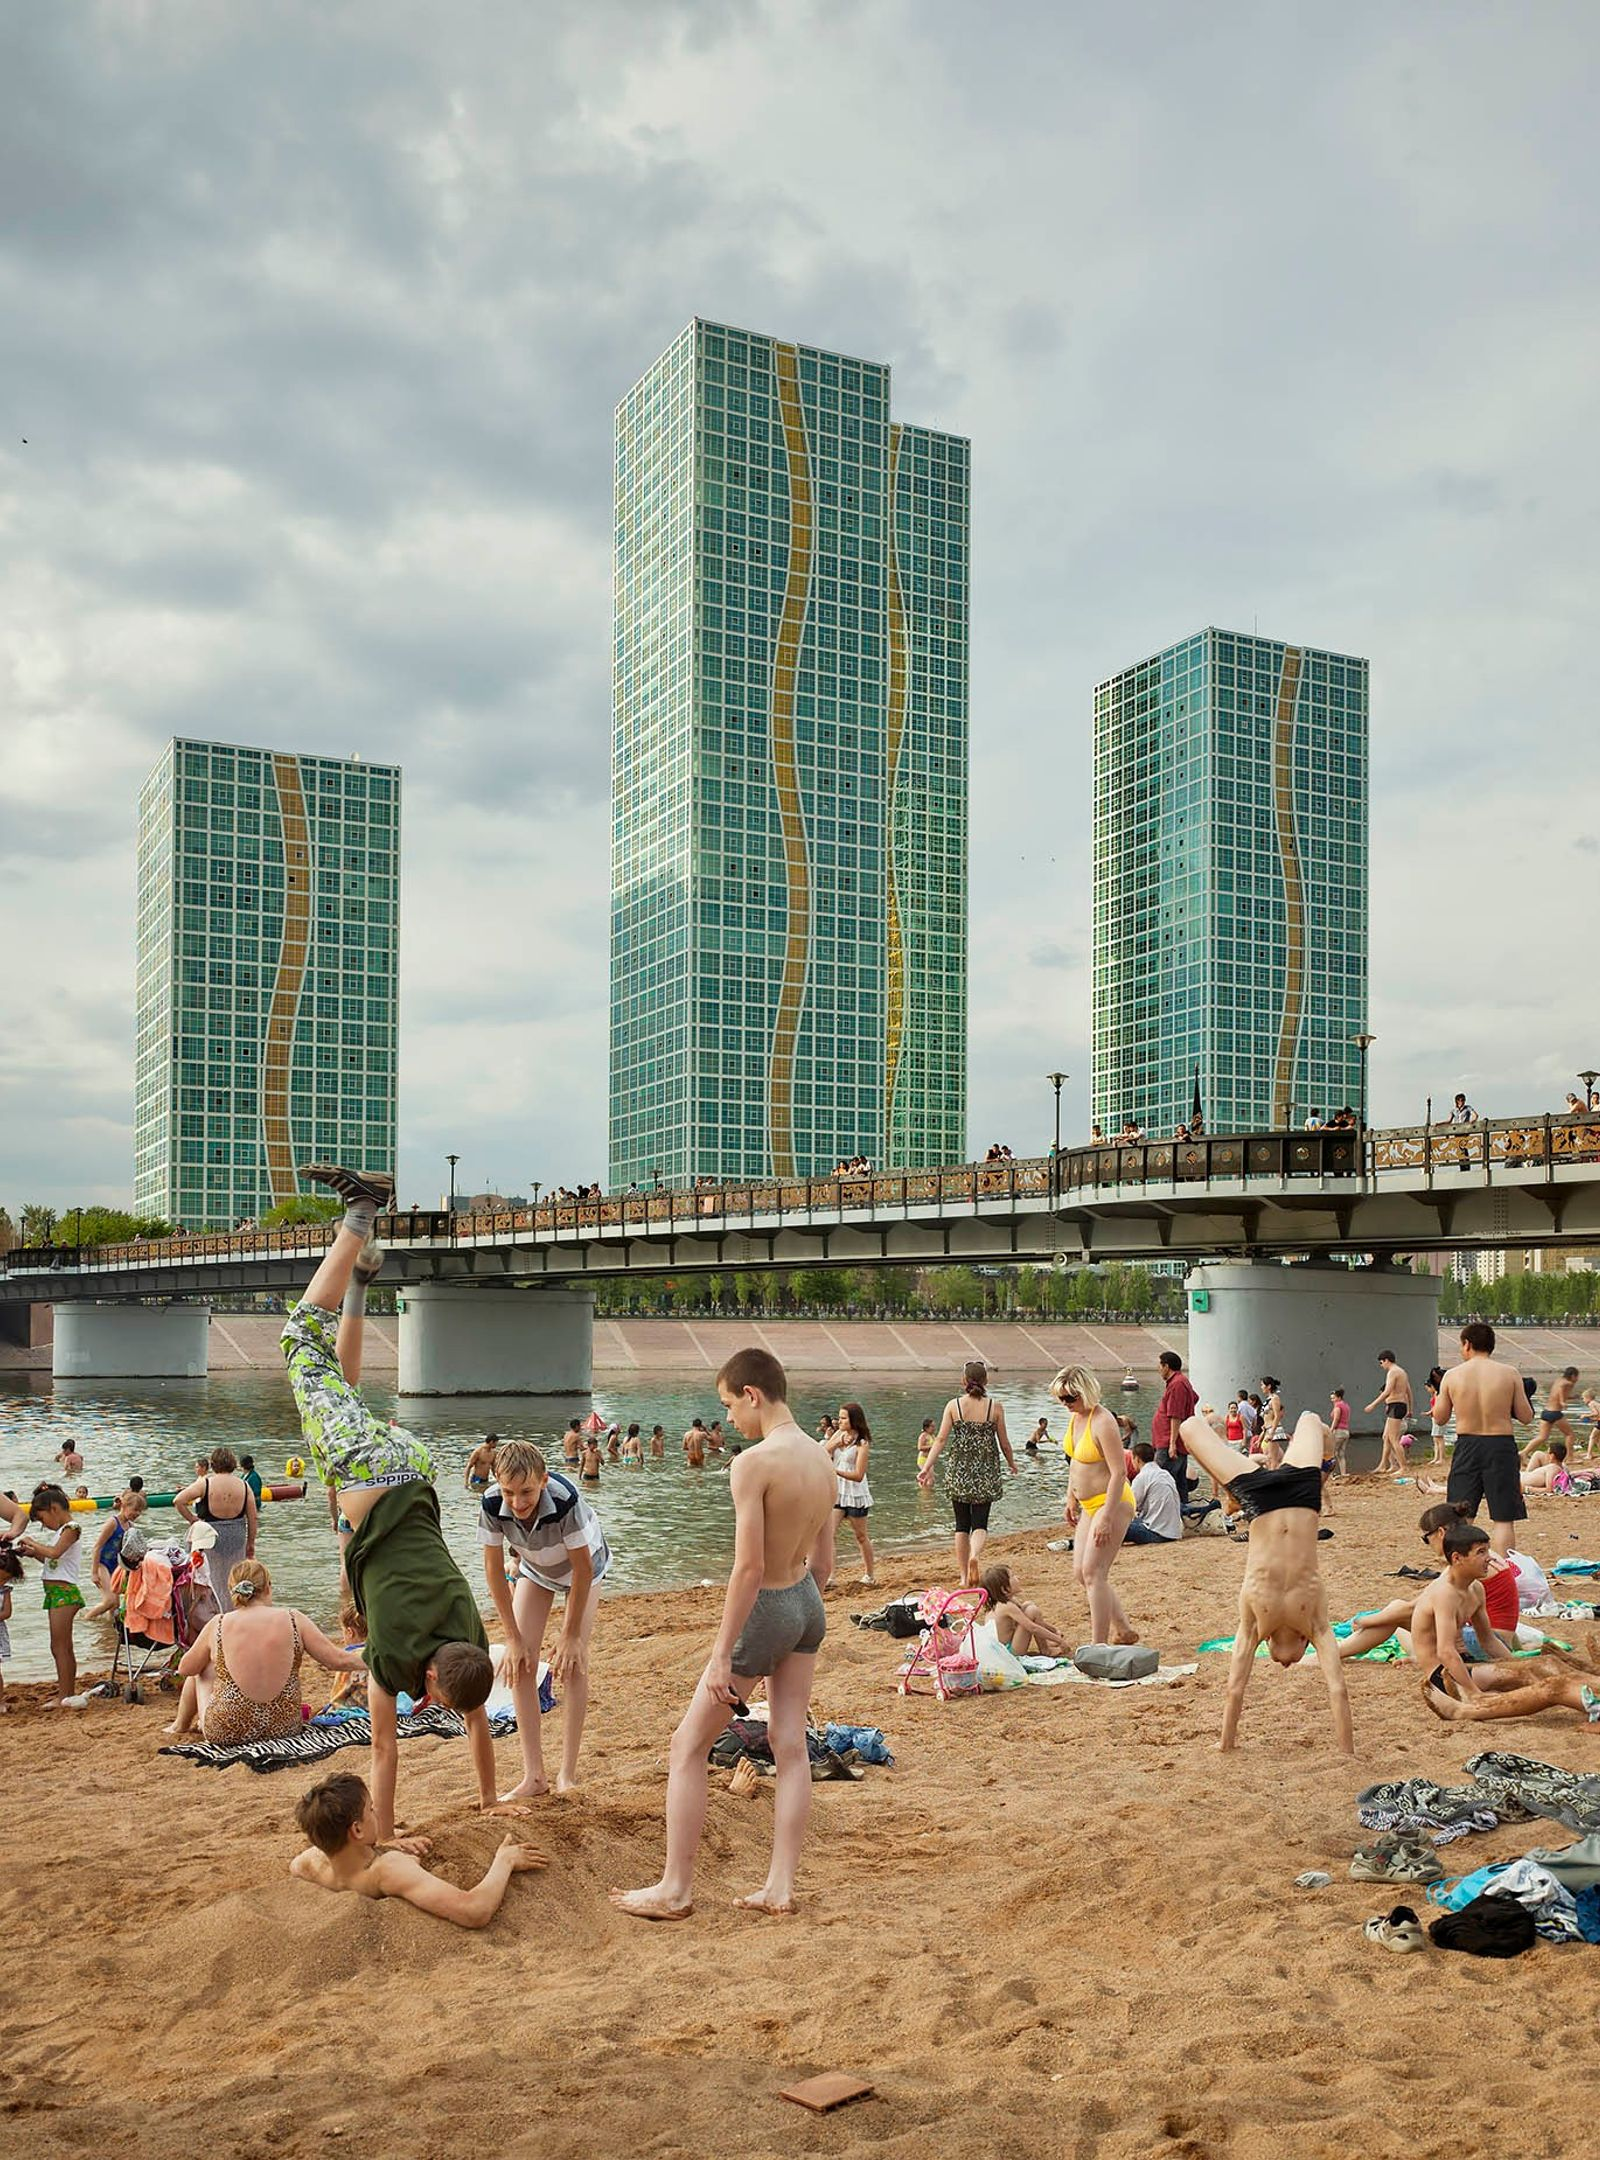 Surreal Photos of Post-Soviet Architecture 1